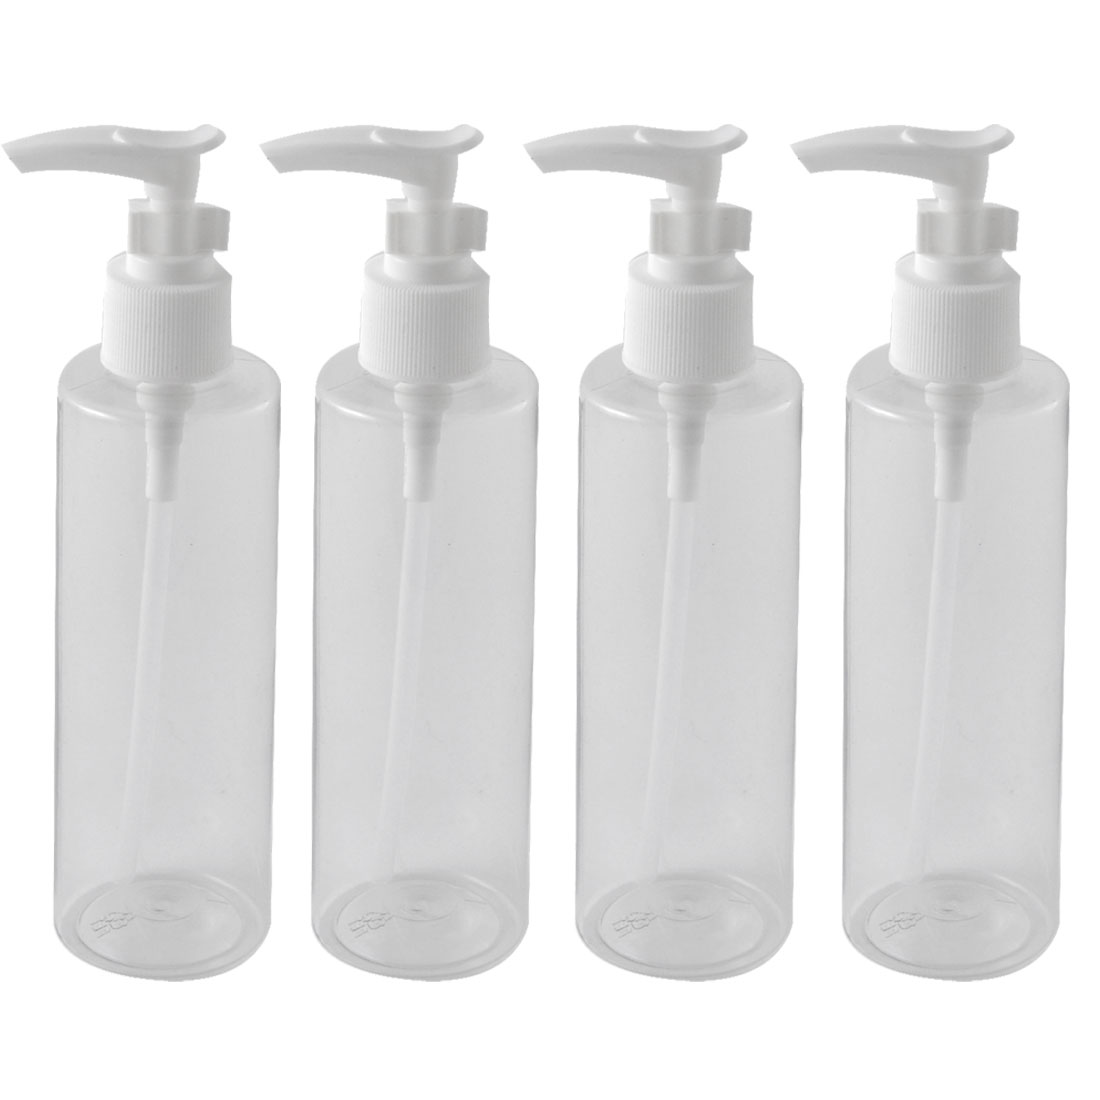 Travel Woman Plastic Shampoo Cosmetic Emulsion Liquid Spray Press Bottle Clear 250ml 4pcs